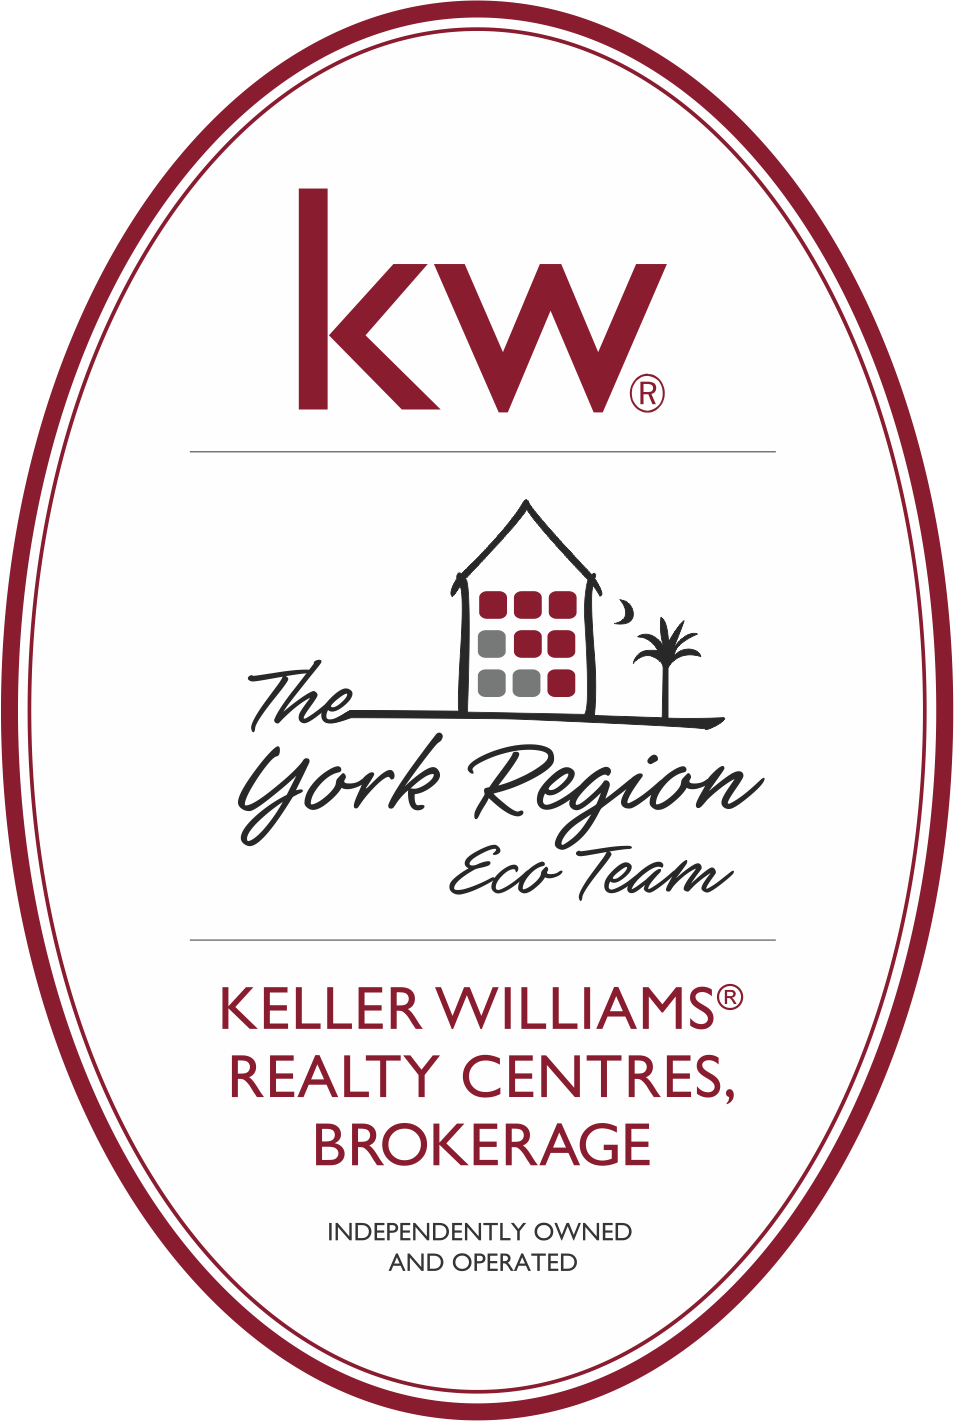 kw-logo-ovalfile-transparent.png